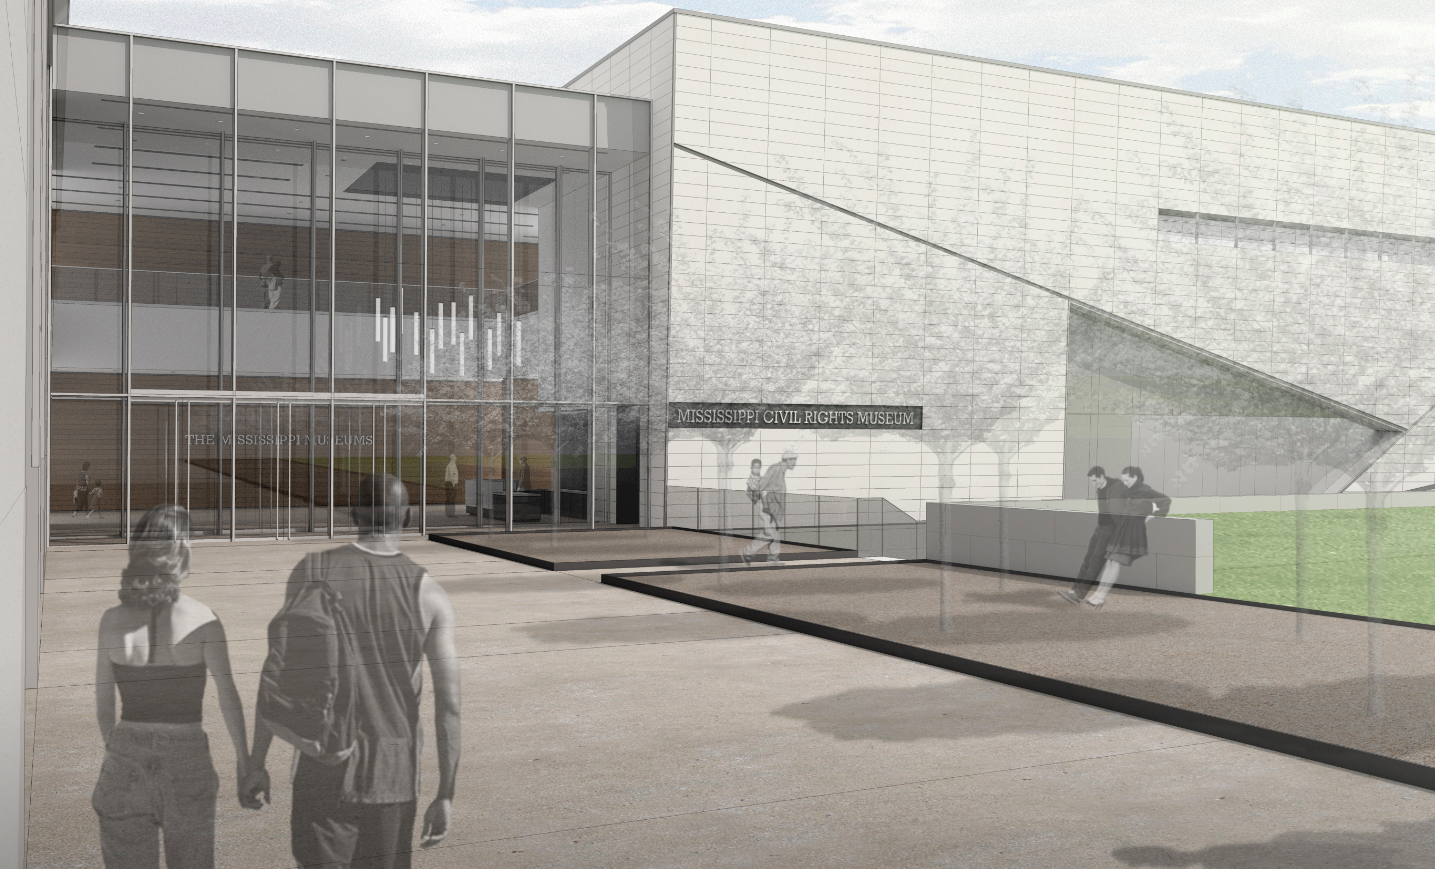 4 Upcoming Projects Will Celebrate African American History Curbed